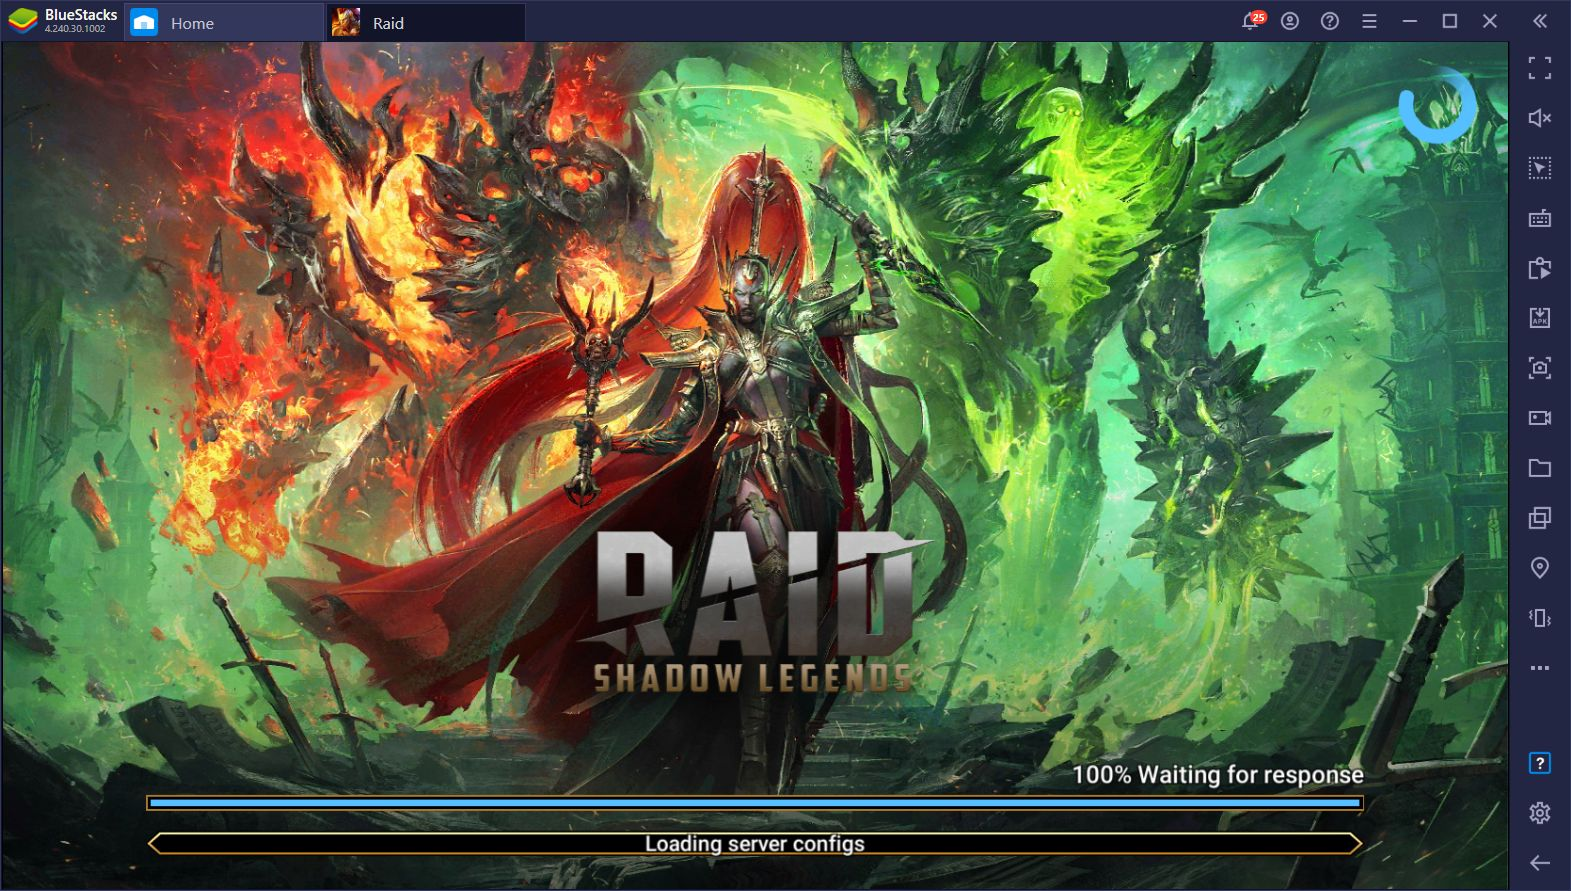 RAID: Shadow Legends Patch 3.0 – Doom Tower, New Characters, and More